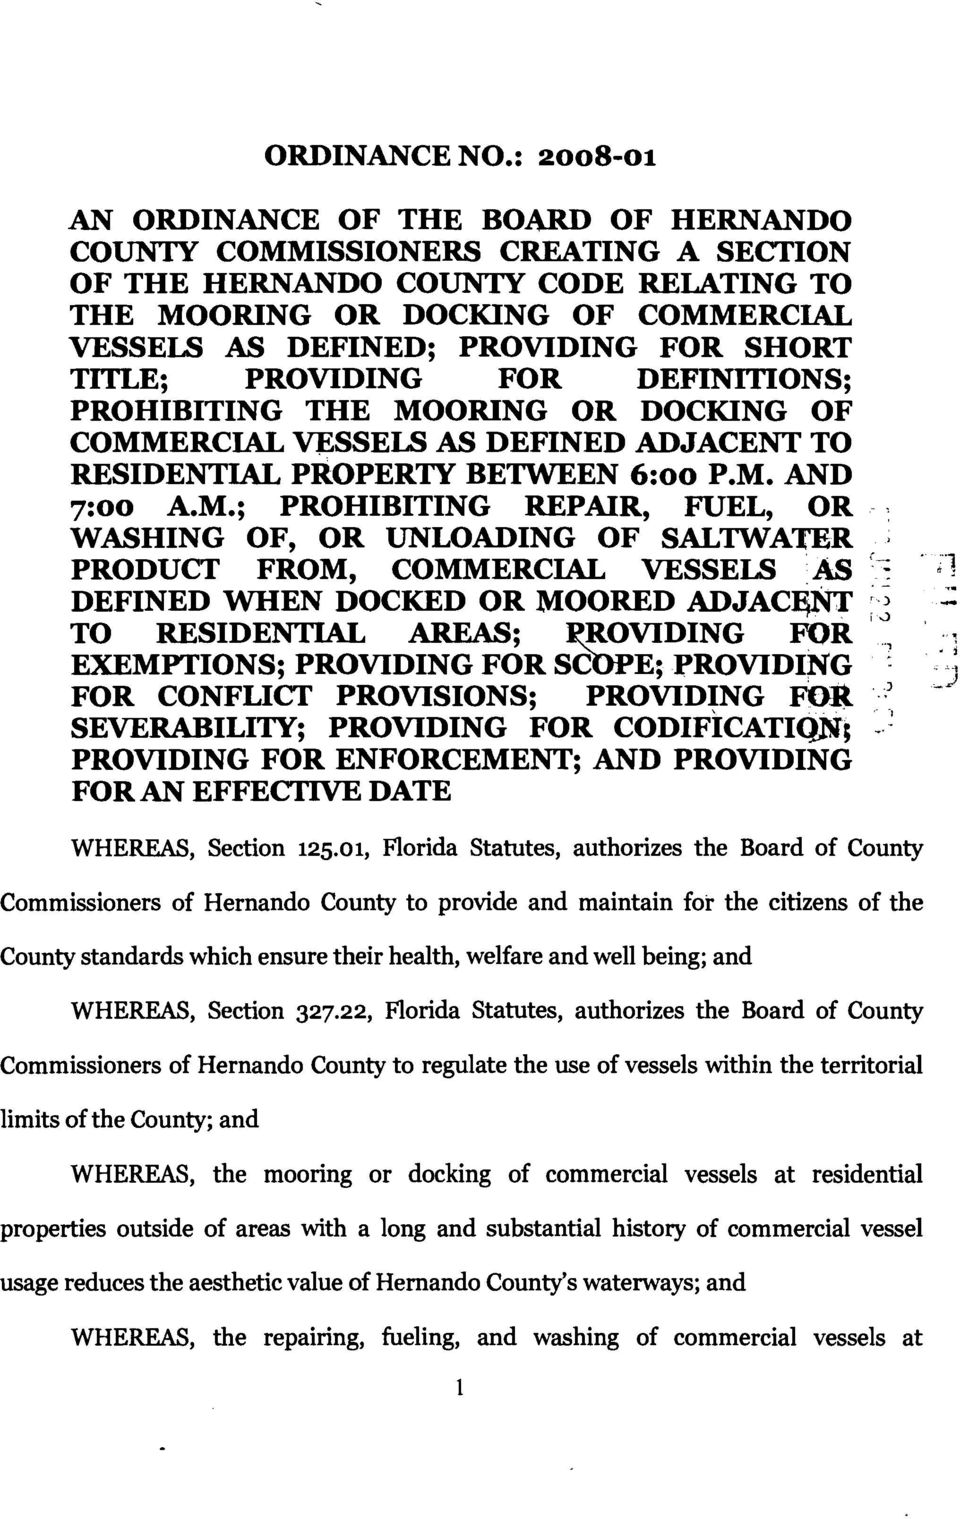 SHORT TITLE; PROVIDING FOR DEFINmONS; PROHIBITING THE MOORING OR DOCKING OF COMMERCIAL V}:SSELS AS DEFINED ADJACENT TO RESIDENTIAL PROPERlY BE'IWEEN 6:00 P.M. AND 7:00 A.M.; PROHIBITING REPAIR, FUEL, OR.